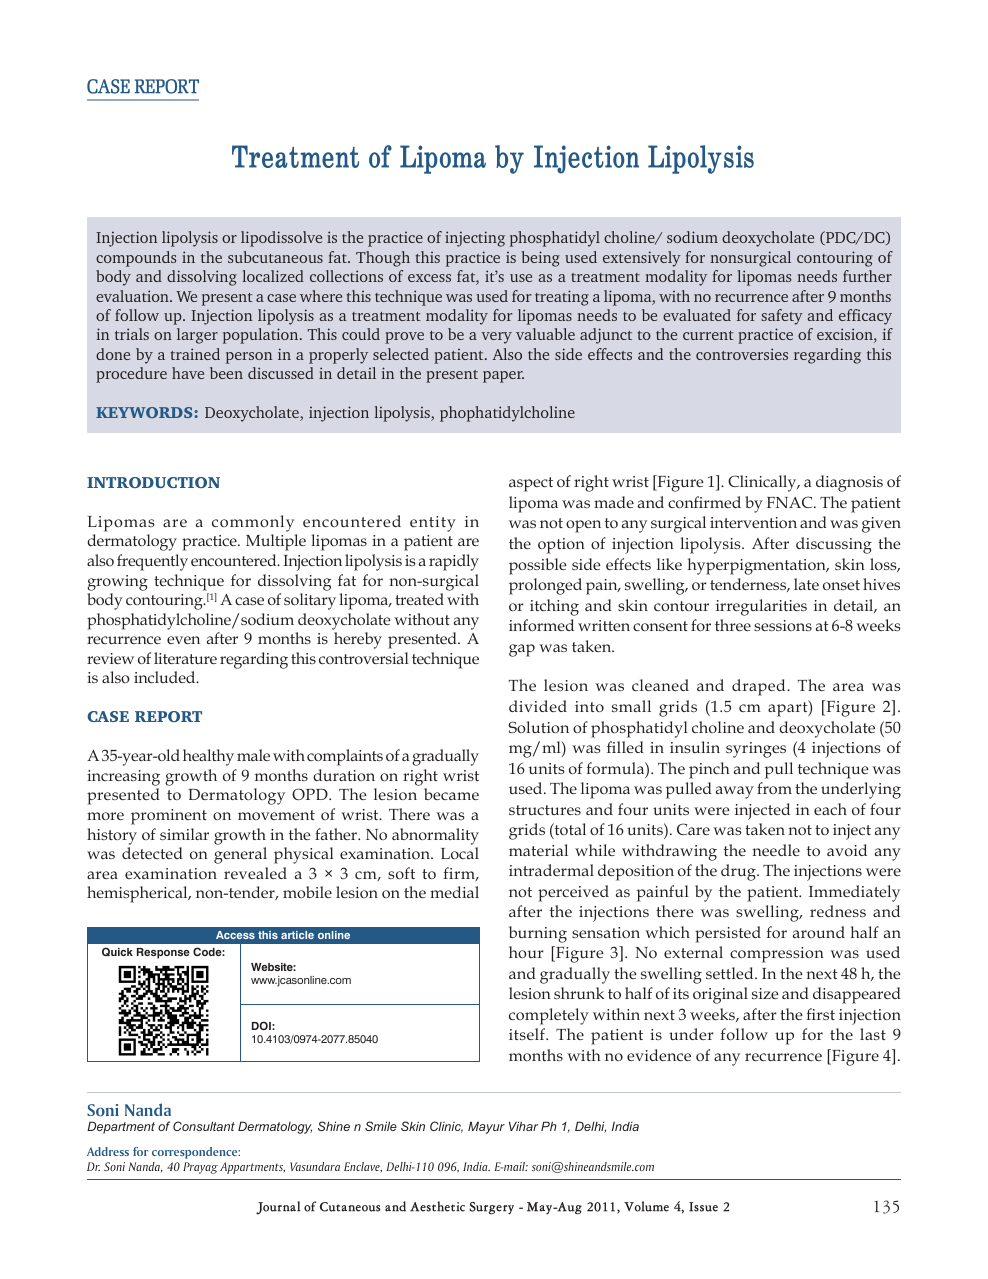 Treatment of lipoma by injection lipolysis – topic of